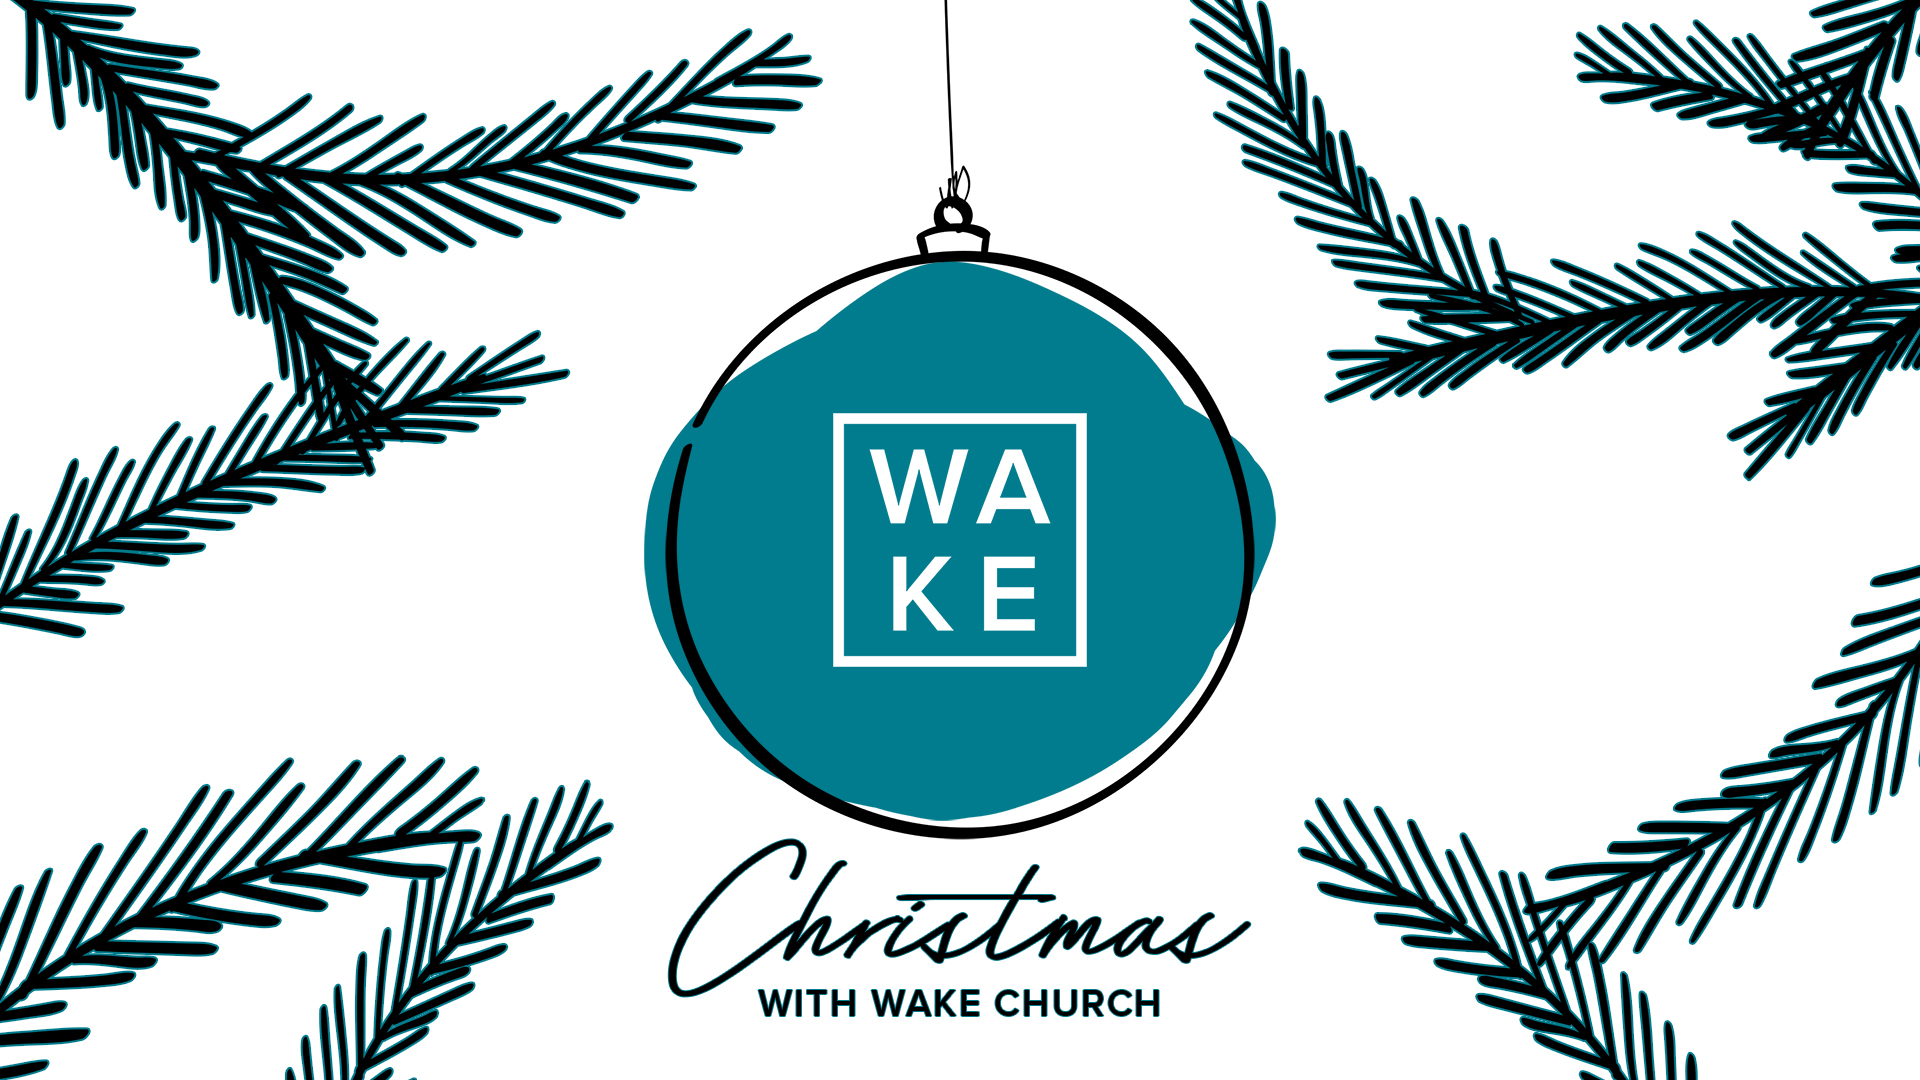 CHRISTMAS WITH WAKE - You are invite to our Christmas services on the 23rd and our Candlelight service on the 24th!